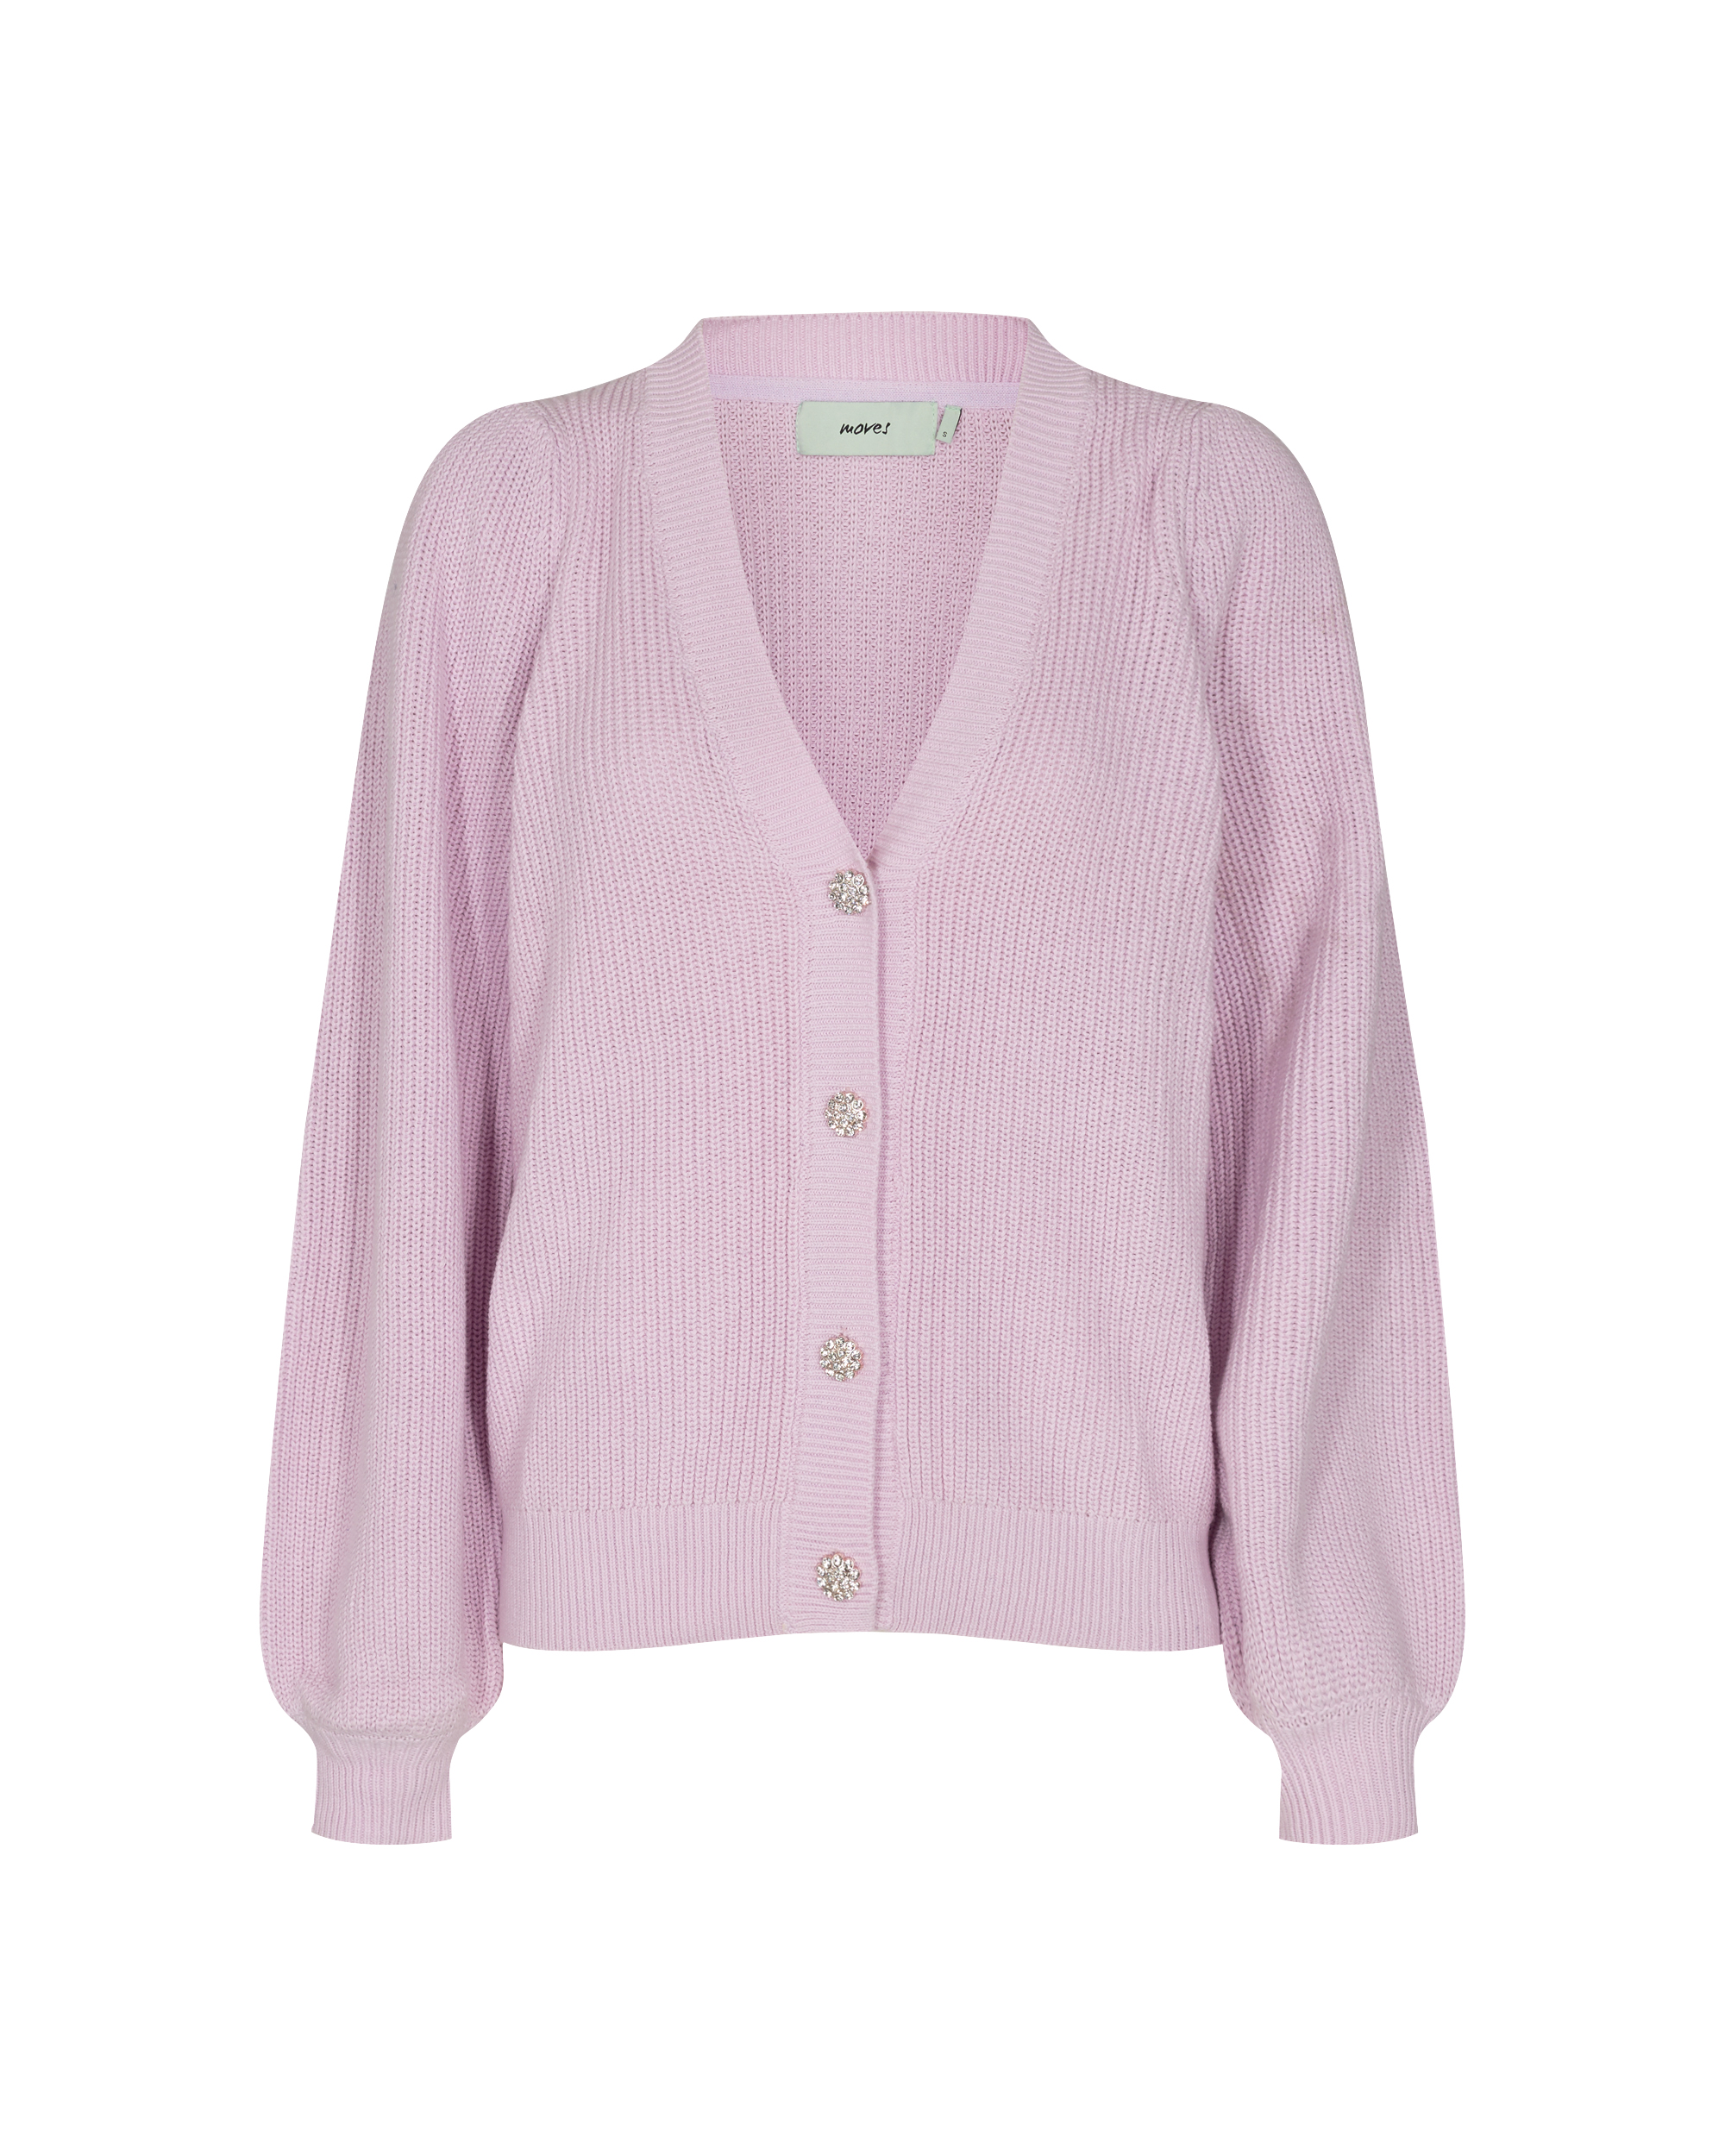 Moves Loula cardigan, orchid bloom, x-small